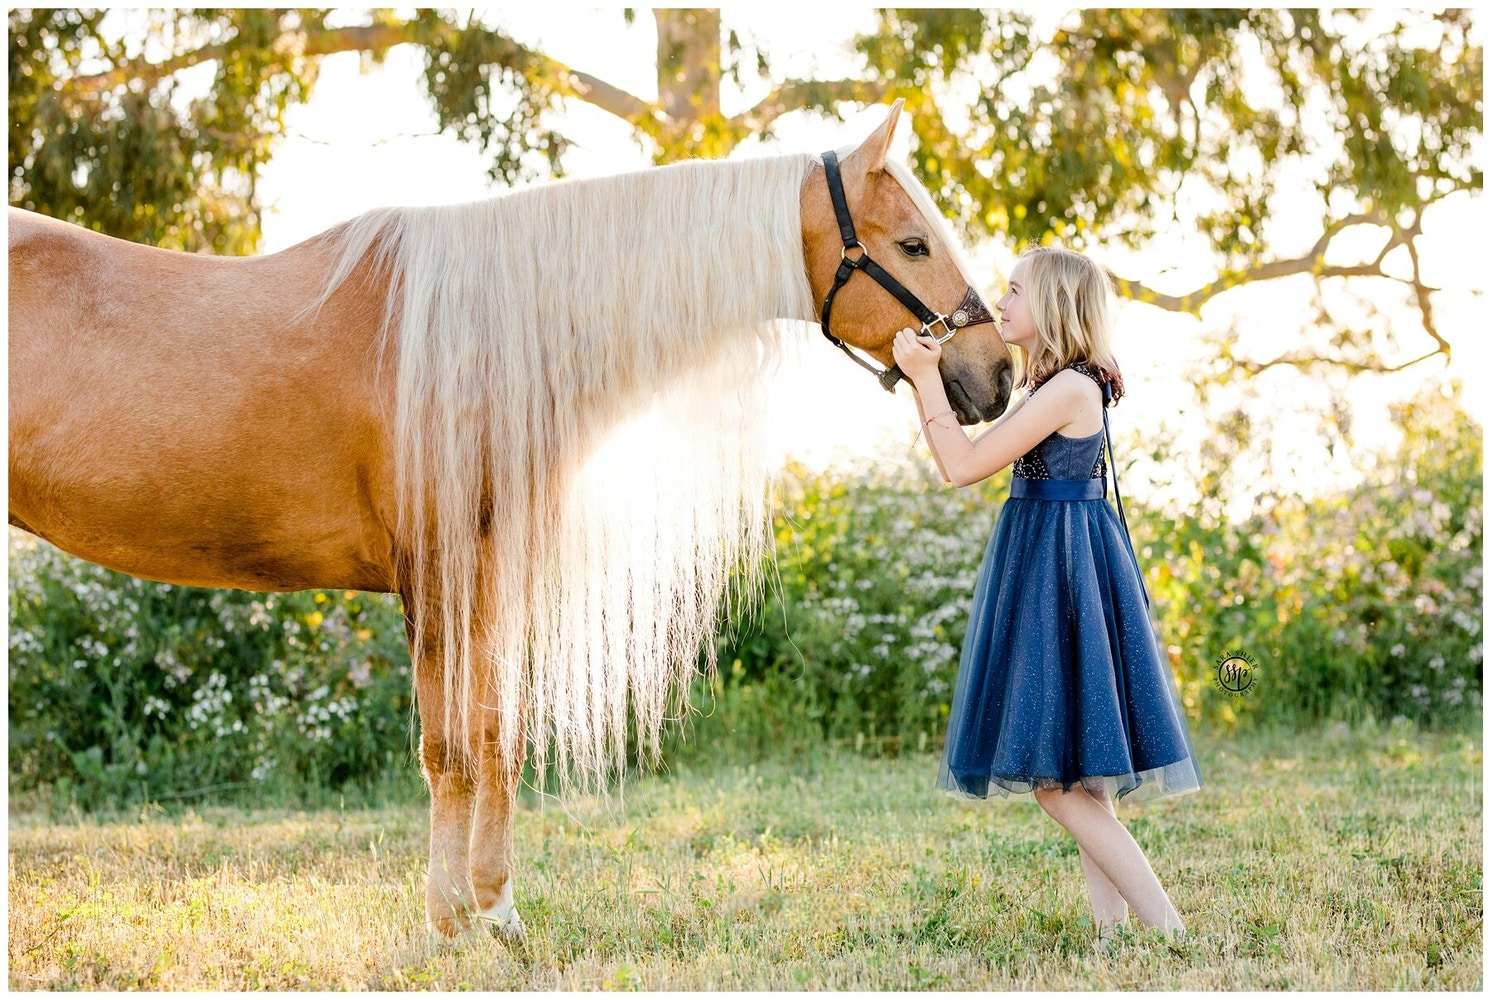 Sara Shier Photography: 5 Planning Tips For Your Horse + Rider Shoot From A Photographer's Perspective